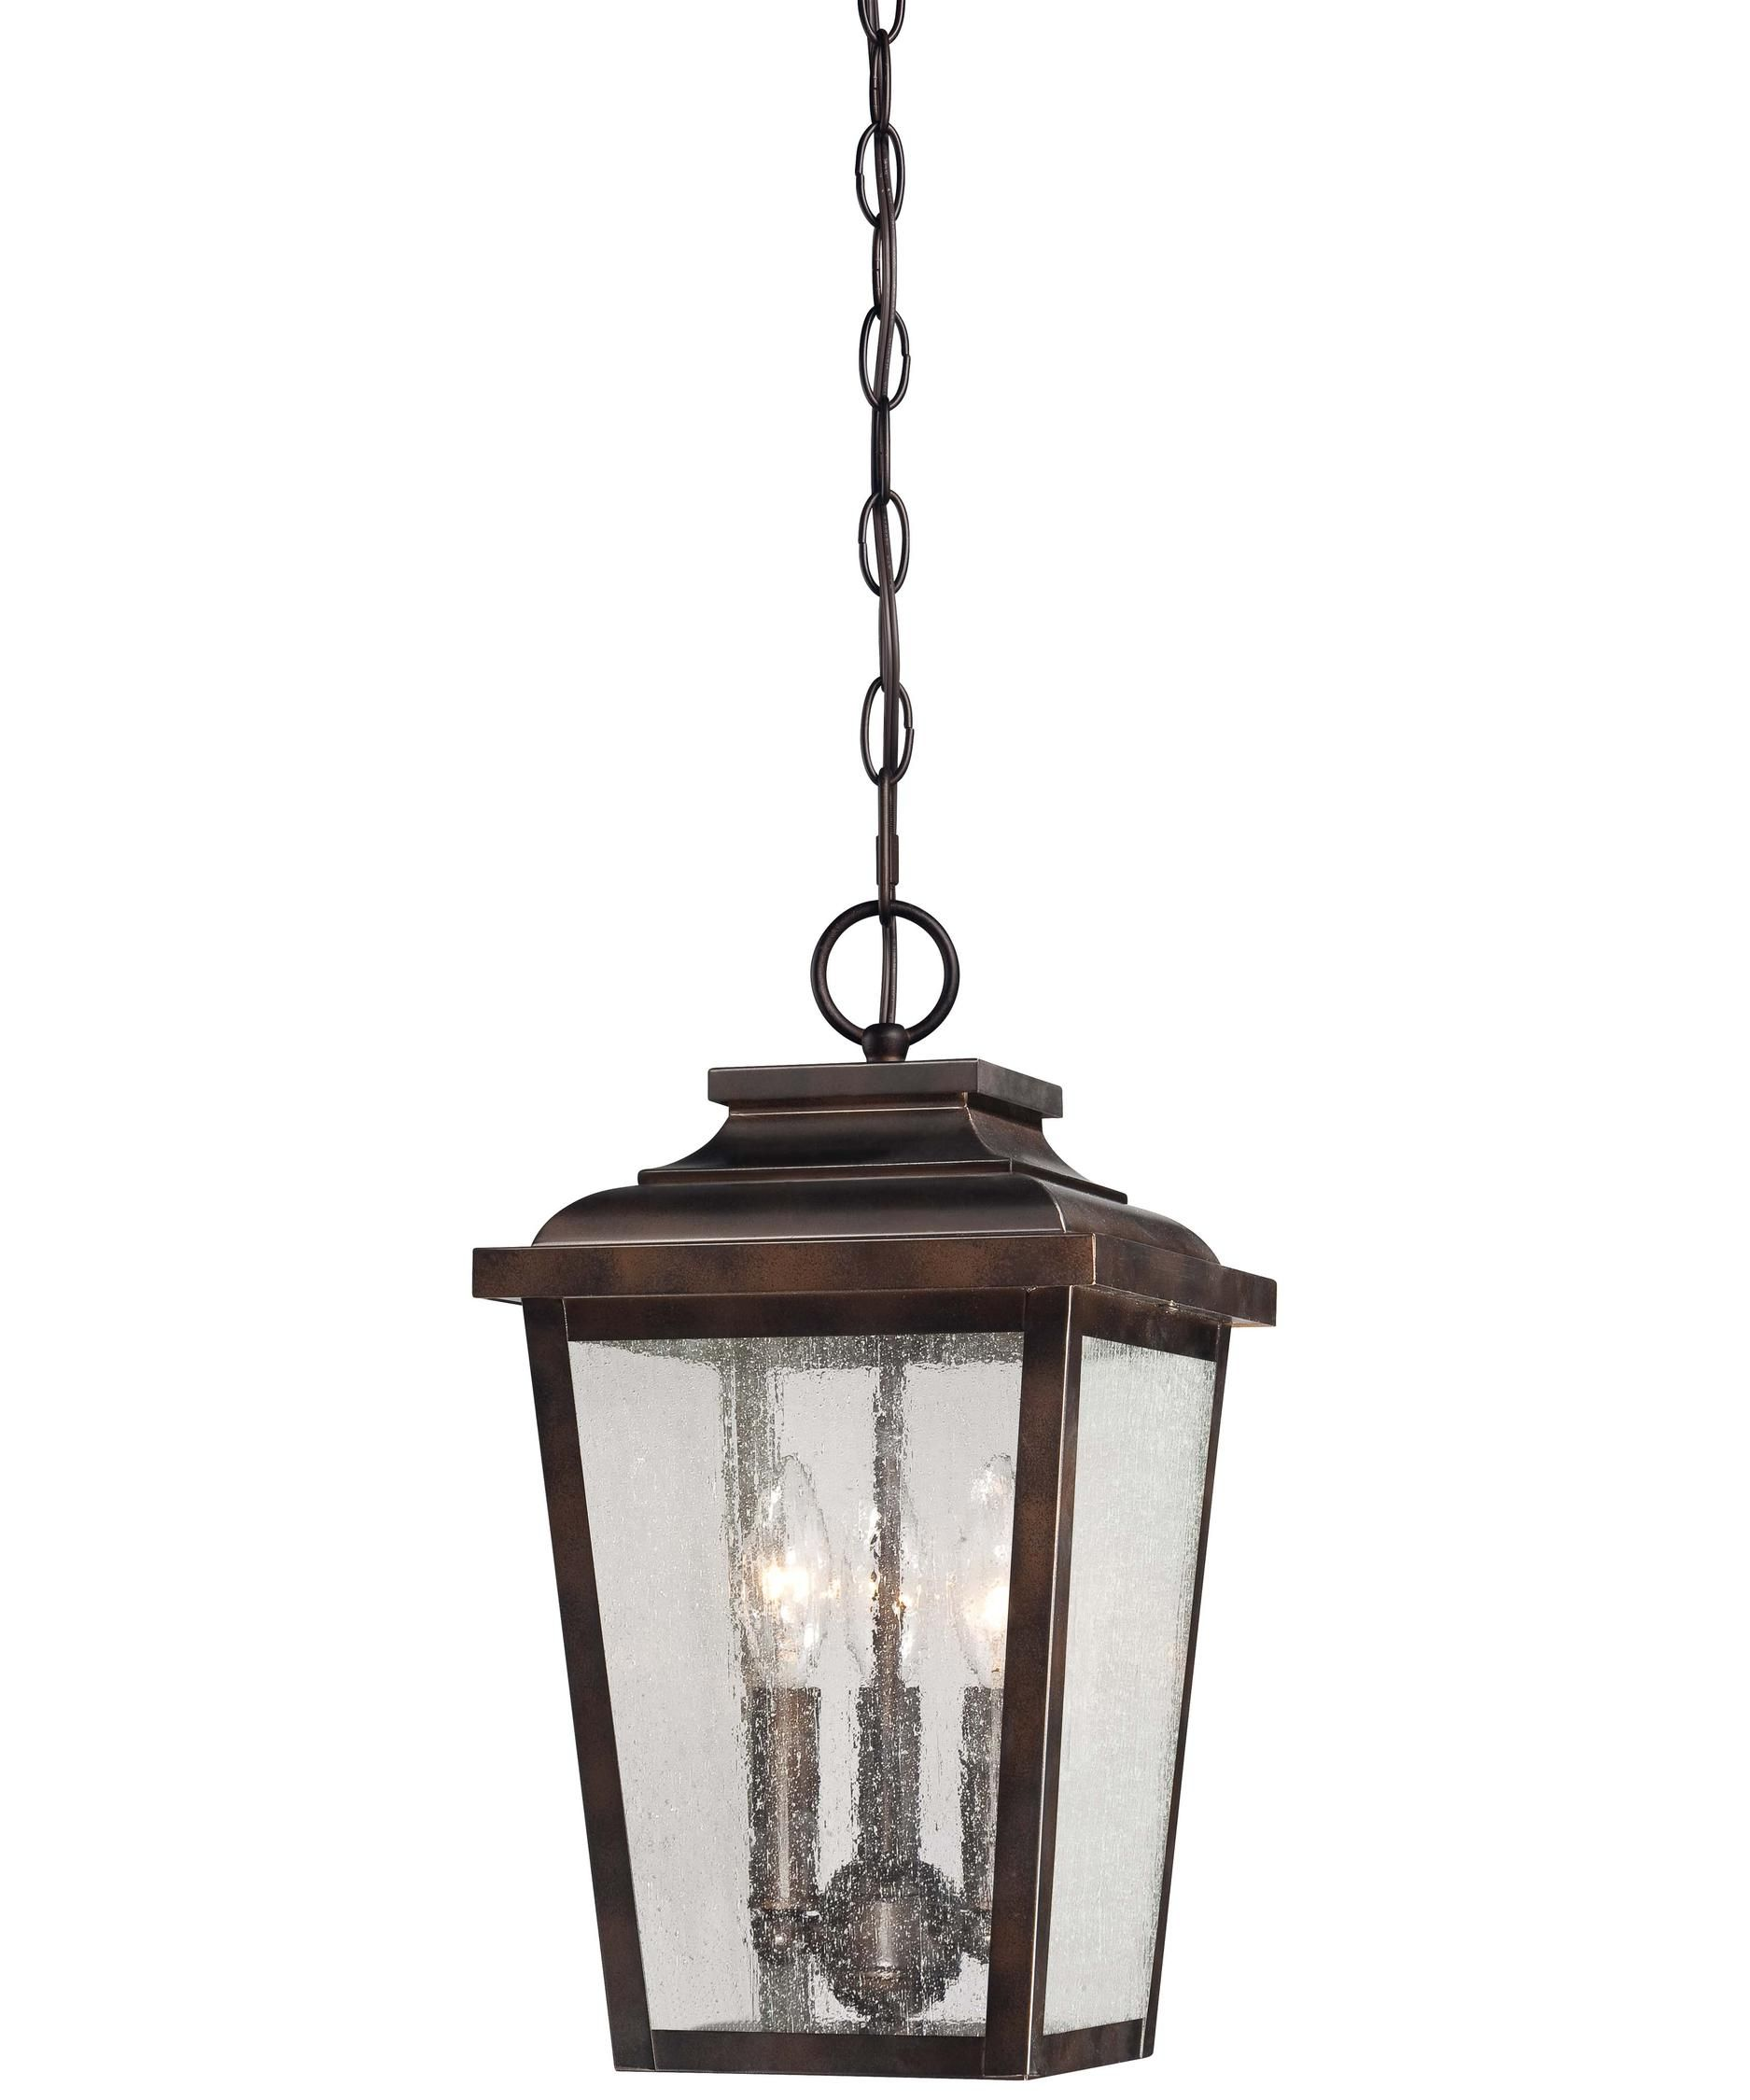 Minka lavery 72174 irvington manor 3 light outdoor hanging lantern minka lavery 72174 irvington manor 3 light outdoor hanging lantern capitol lighting 1 800lighting mozeypictures